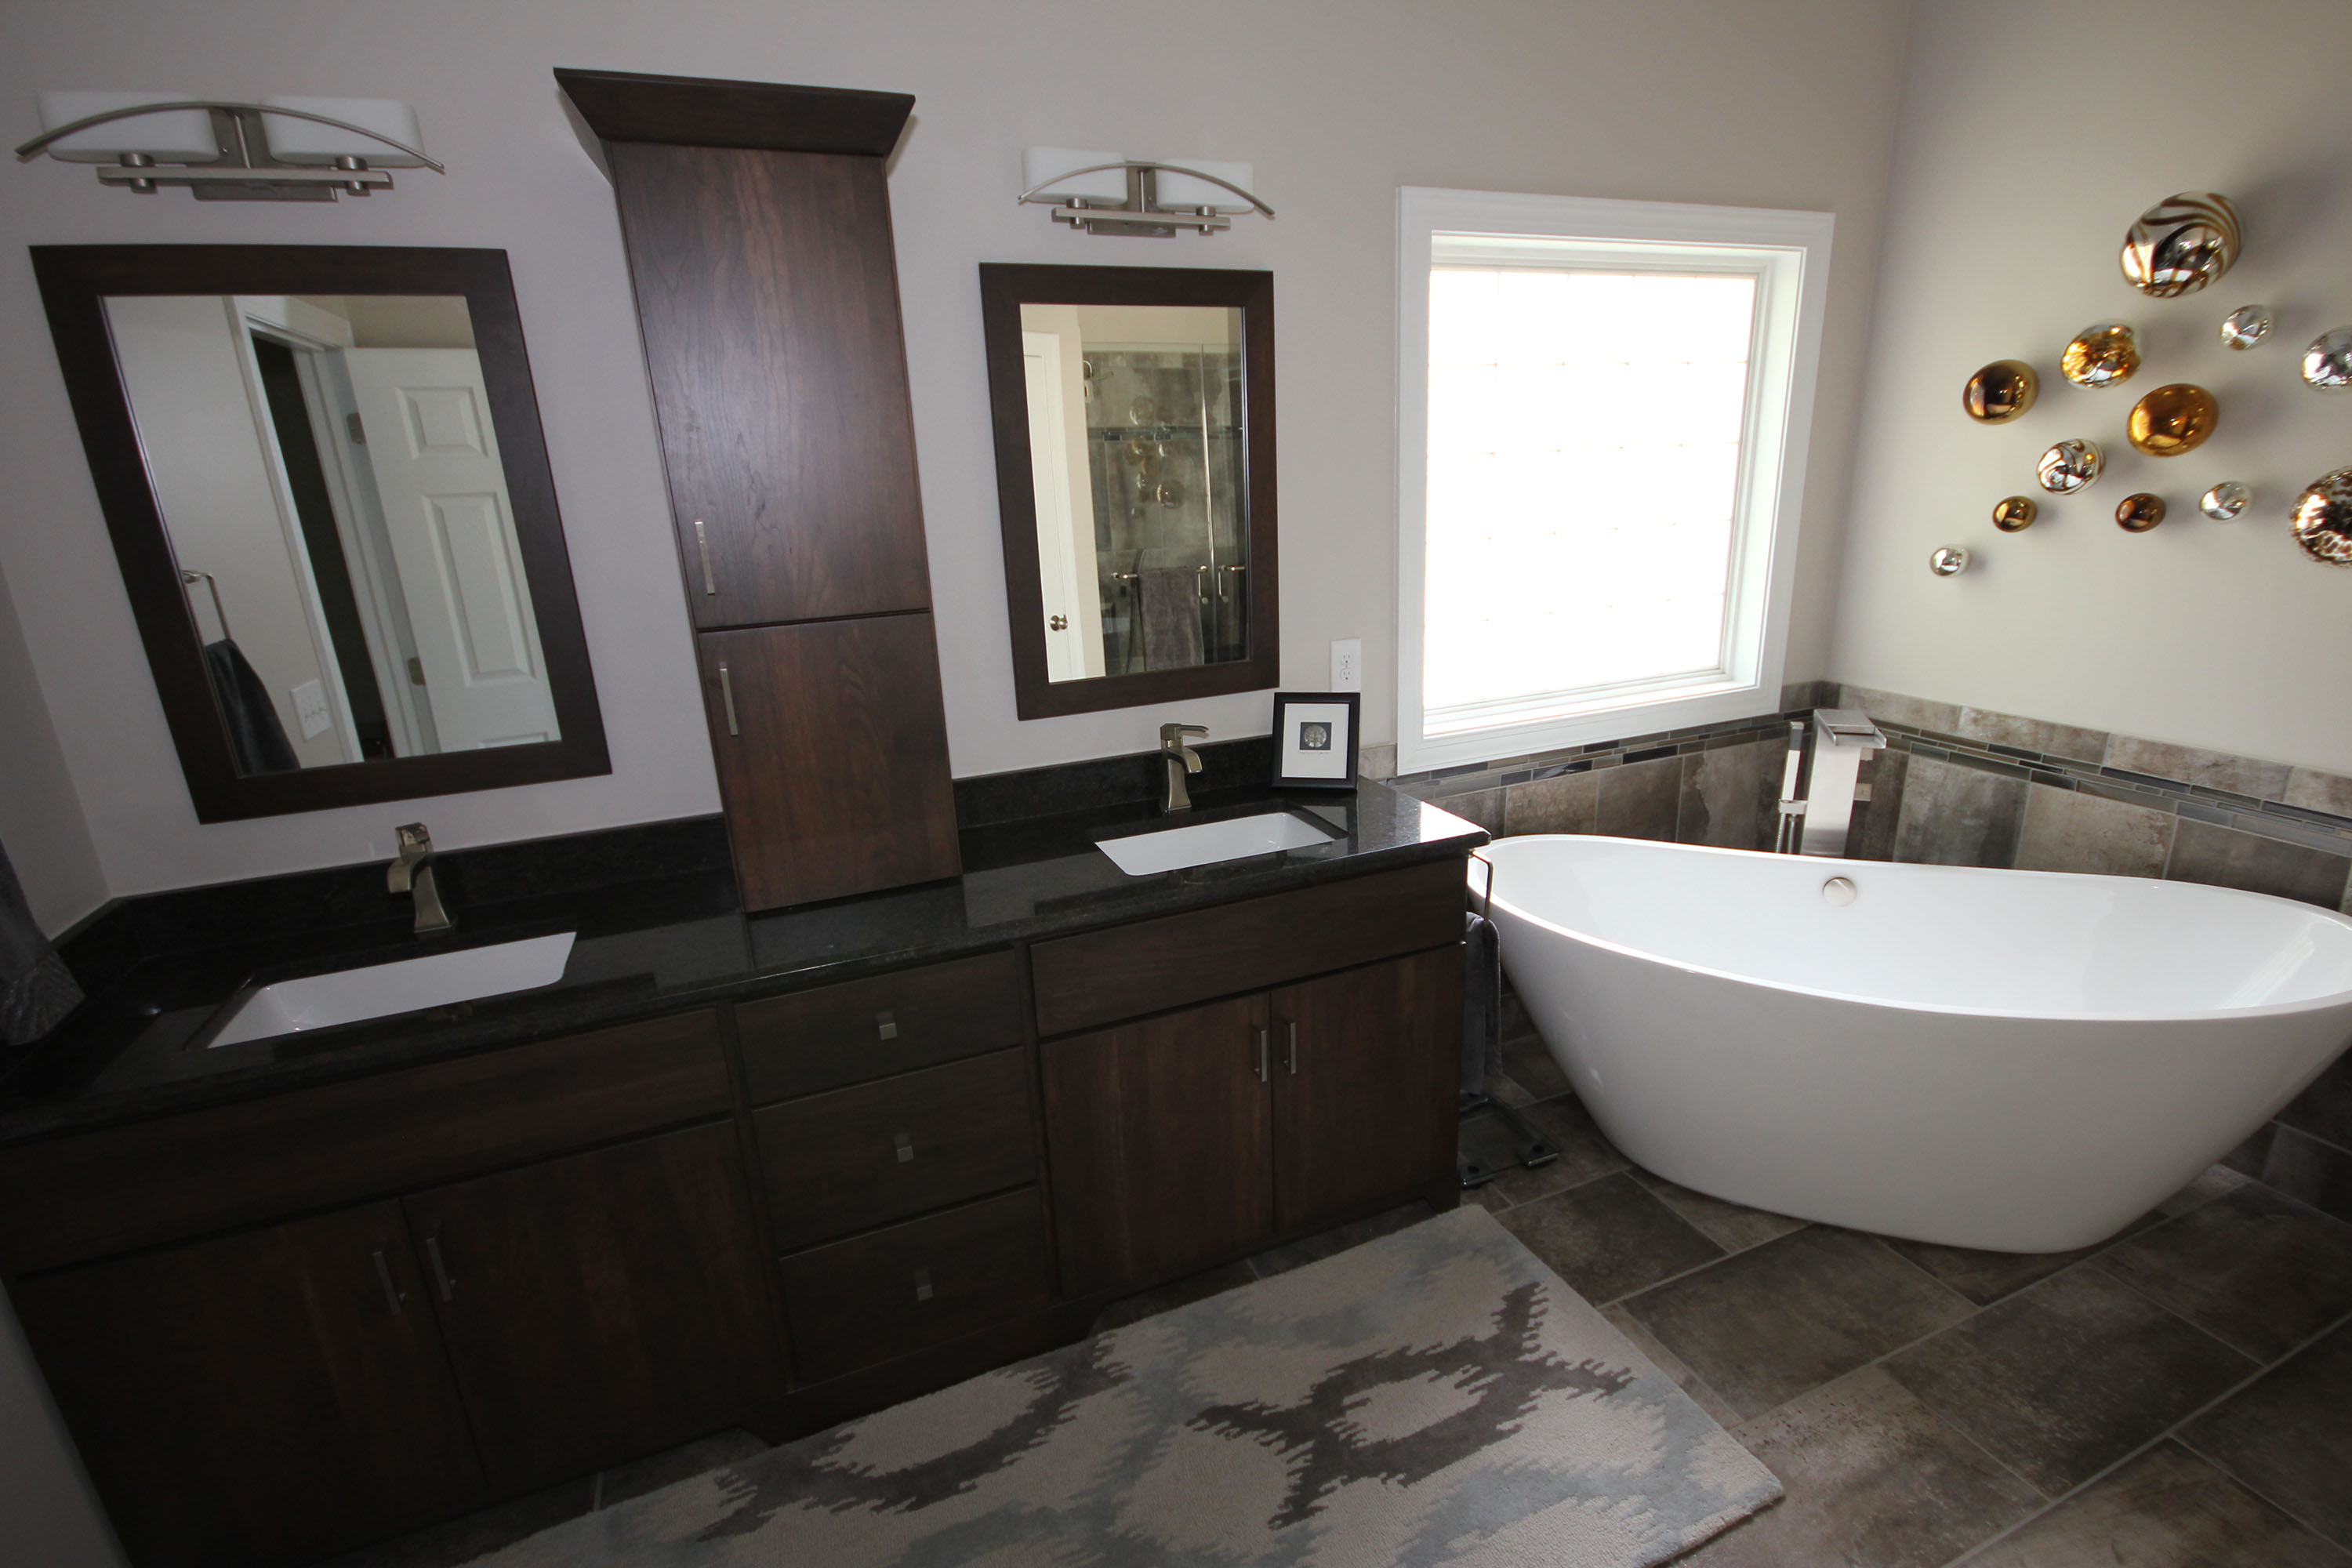 Freestanding Tub. View Image. Bathroom Remodeling Cary. View Image